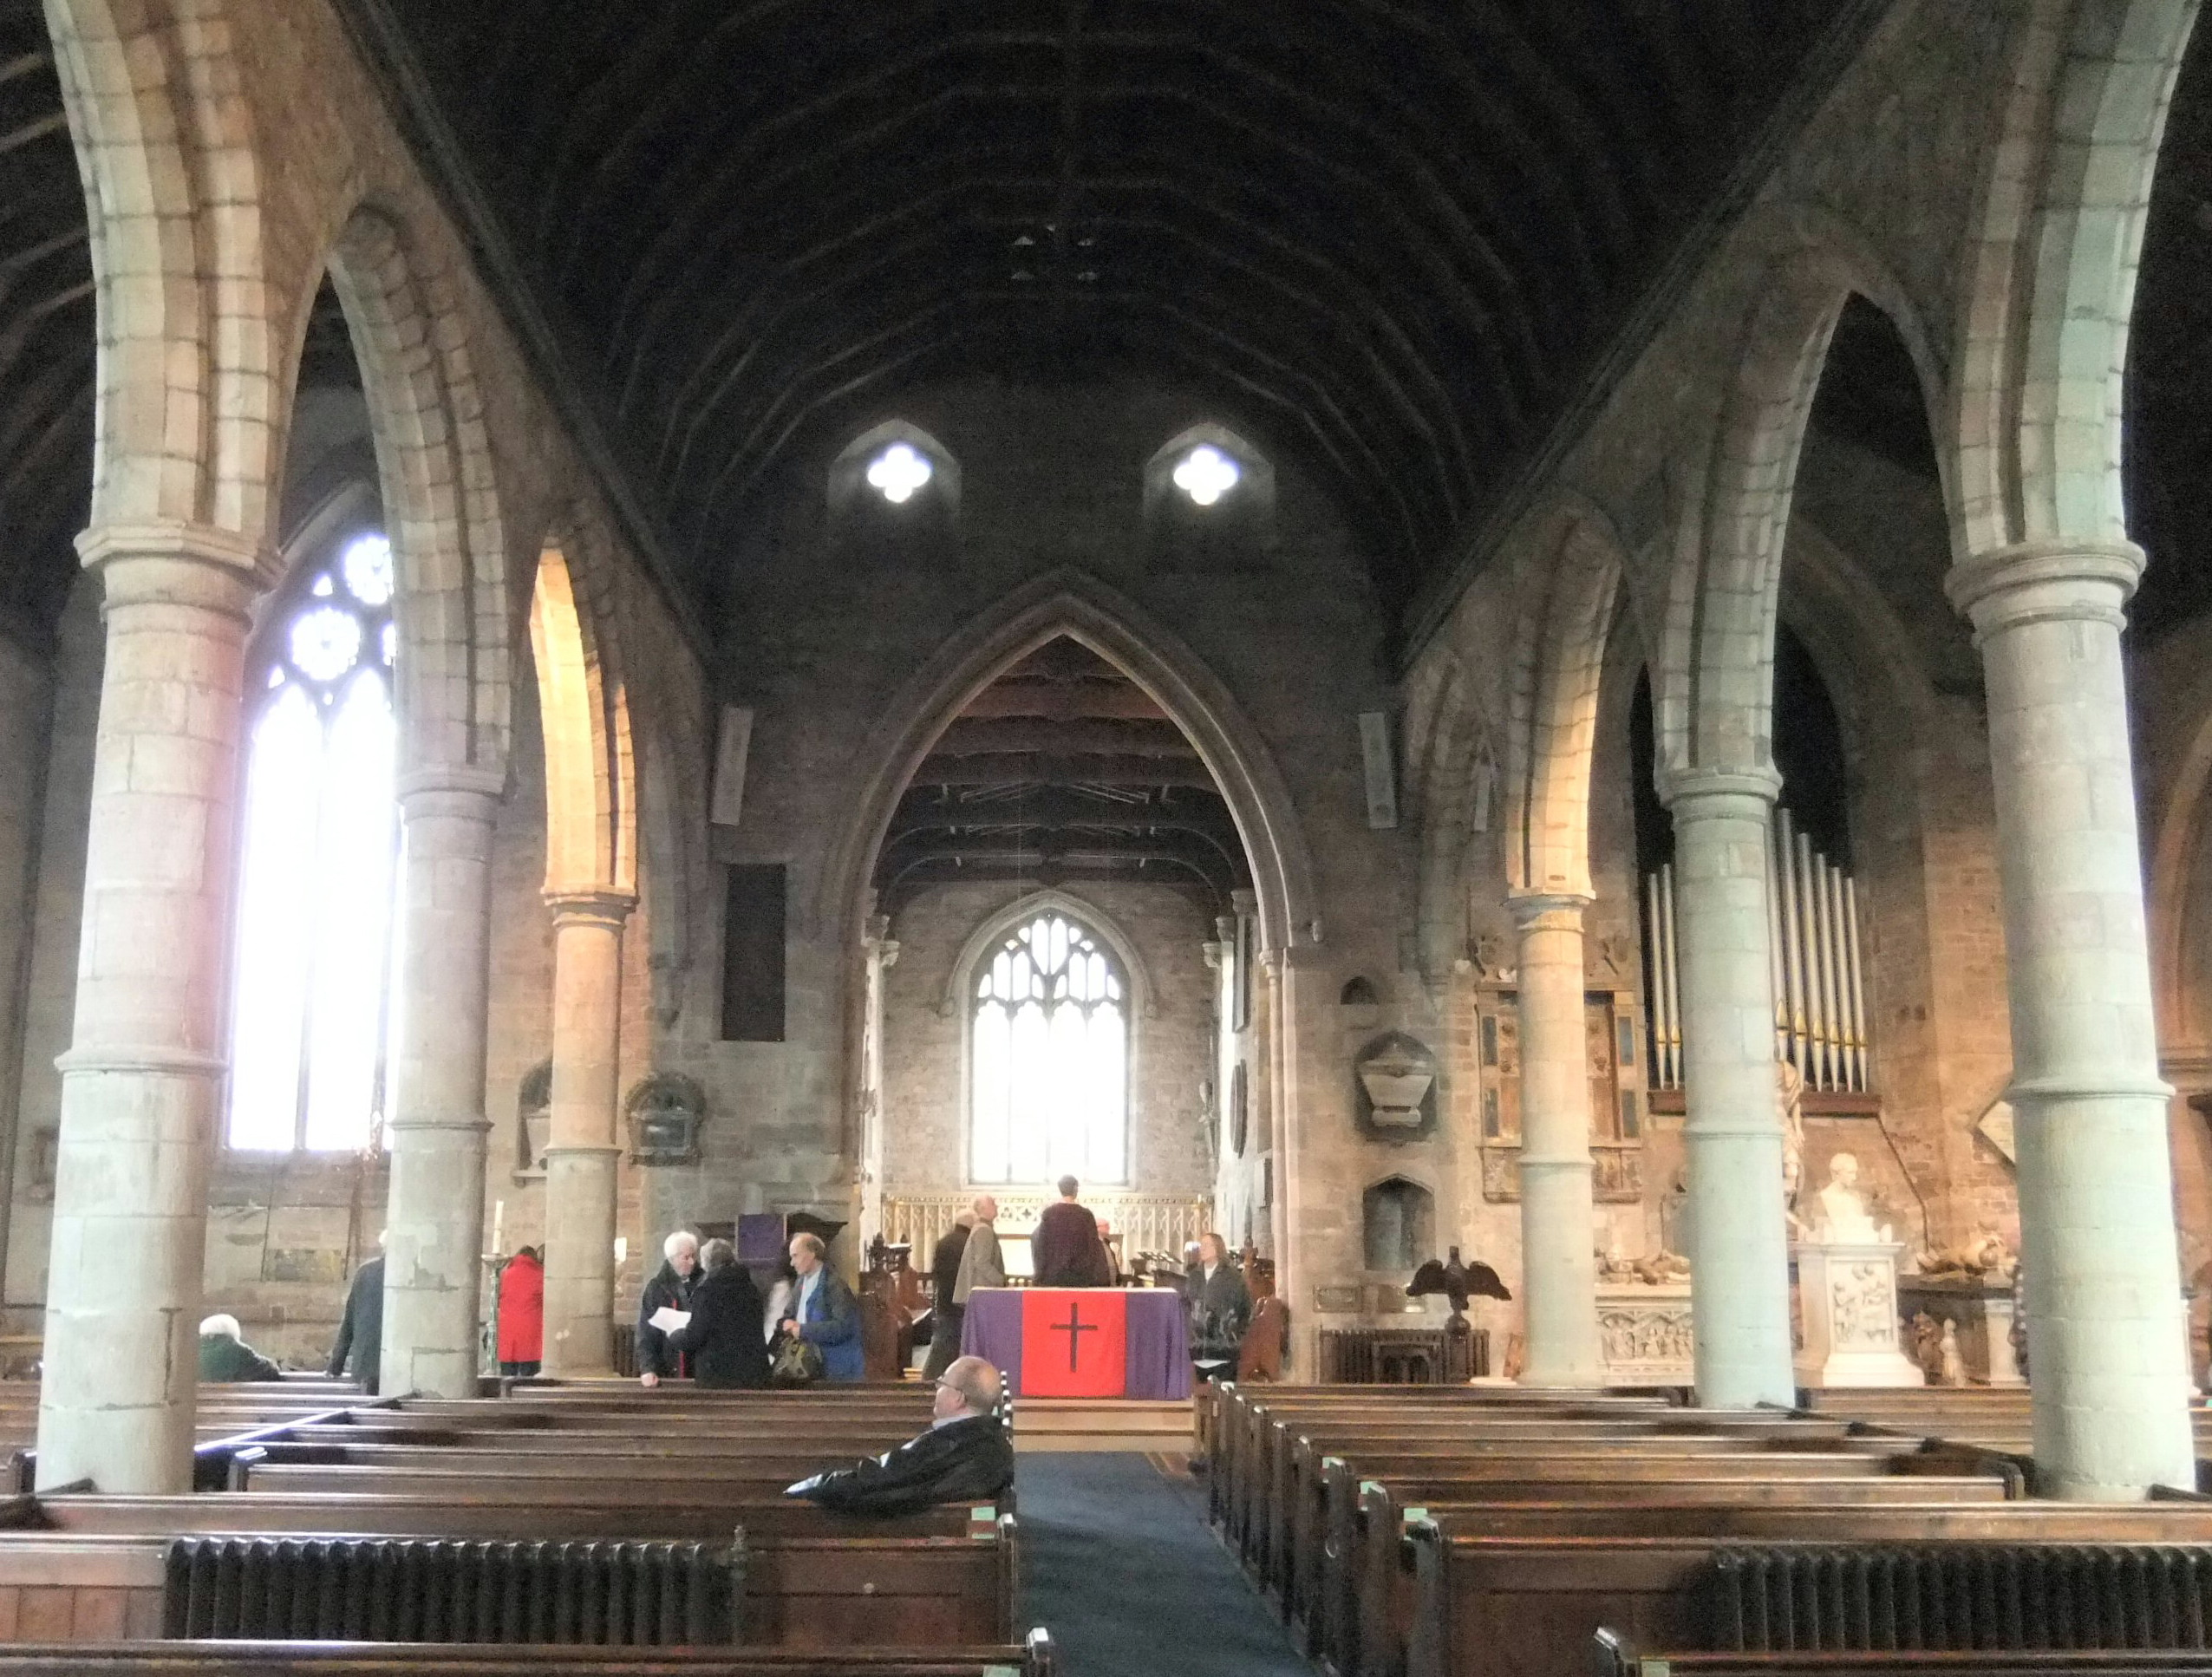 Herefordshire-Ross-on-Wye-St-Mary-Nave1-2210[1]